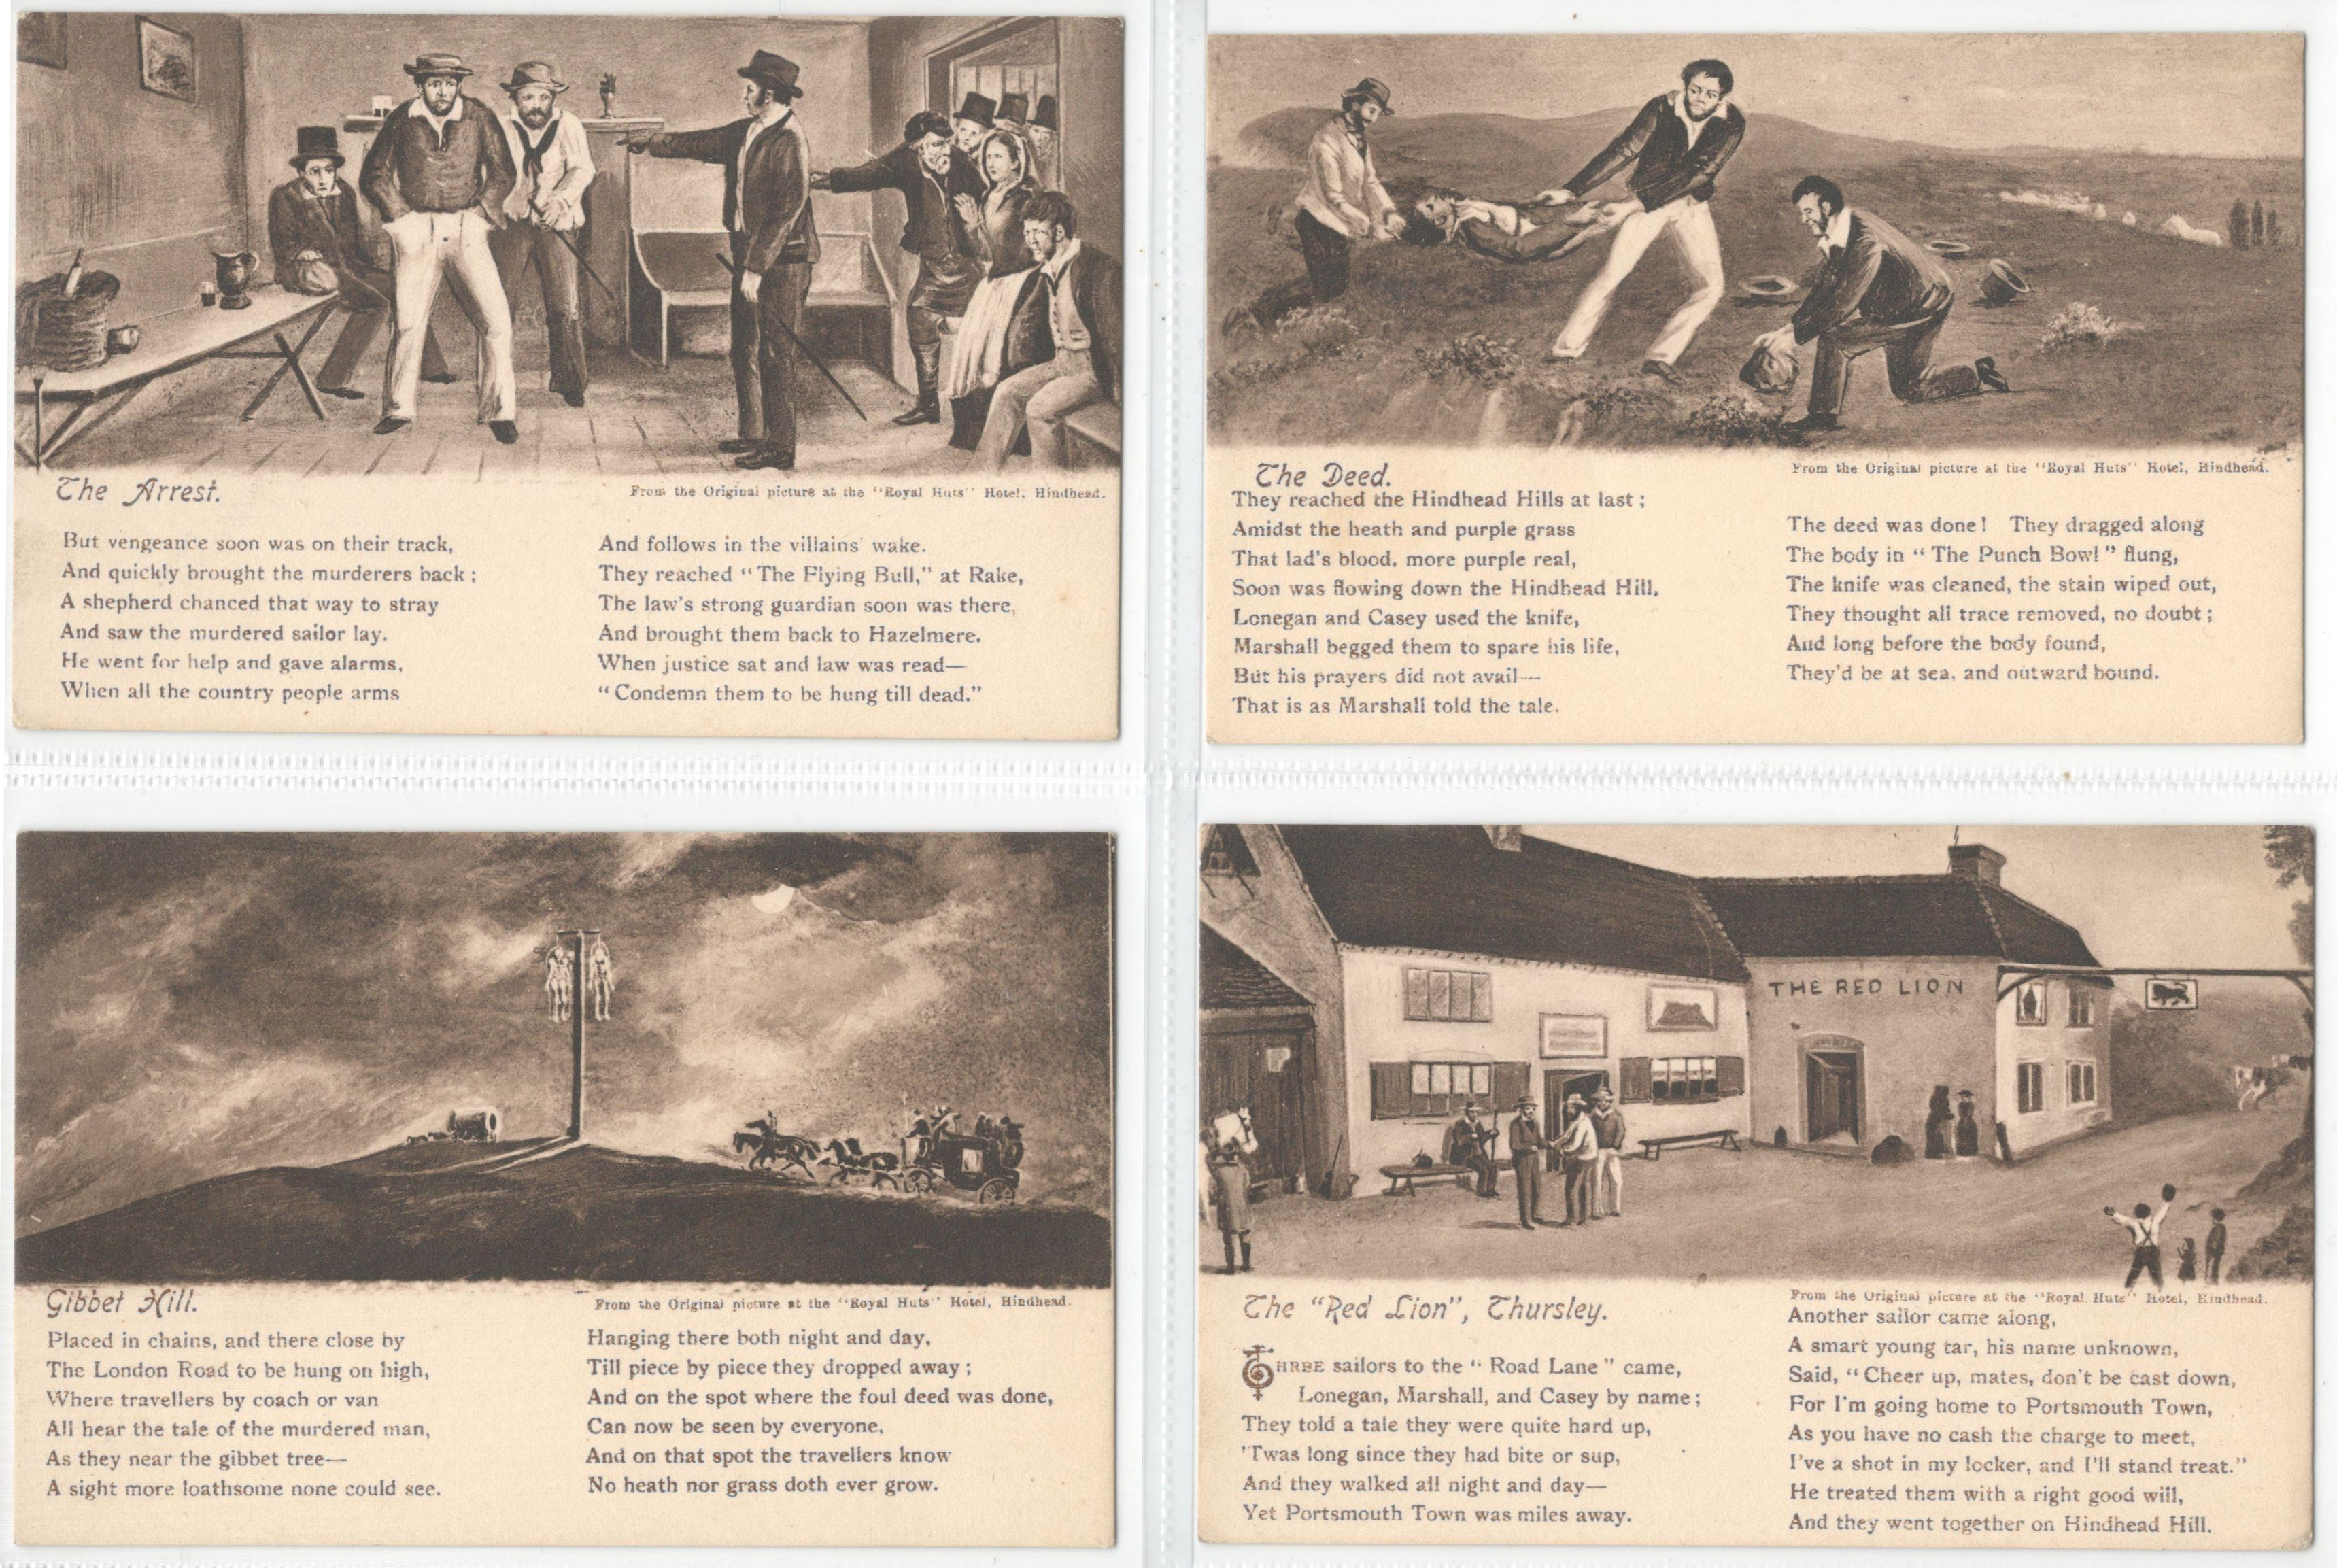 SET OF FOUR POSTCARDS FROM THE ORIGINAL PICTURES AT THE ROYAL HUTS HOTEL HINDHEAD